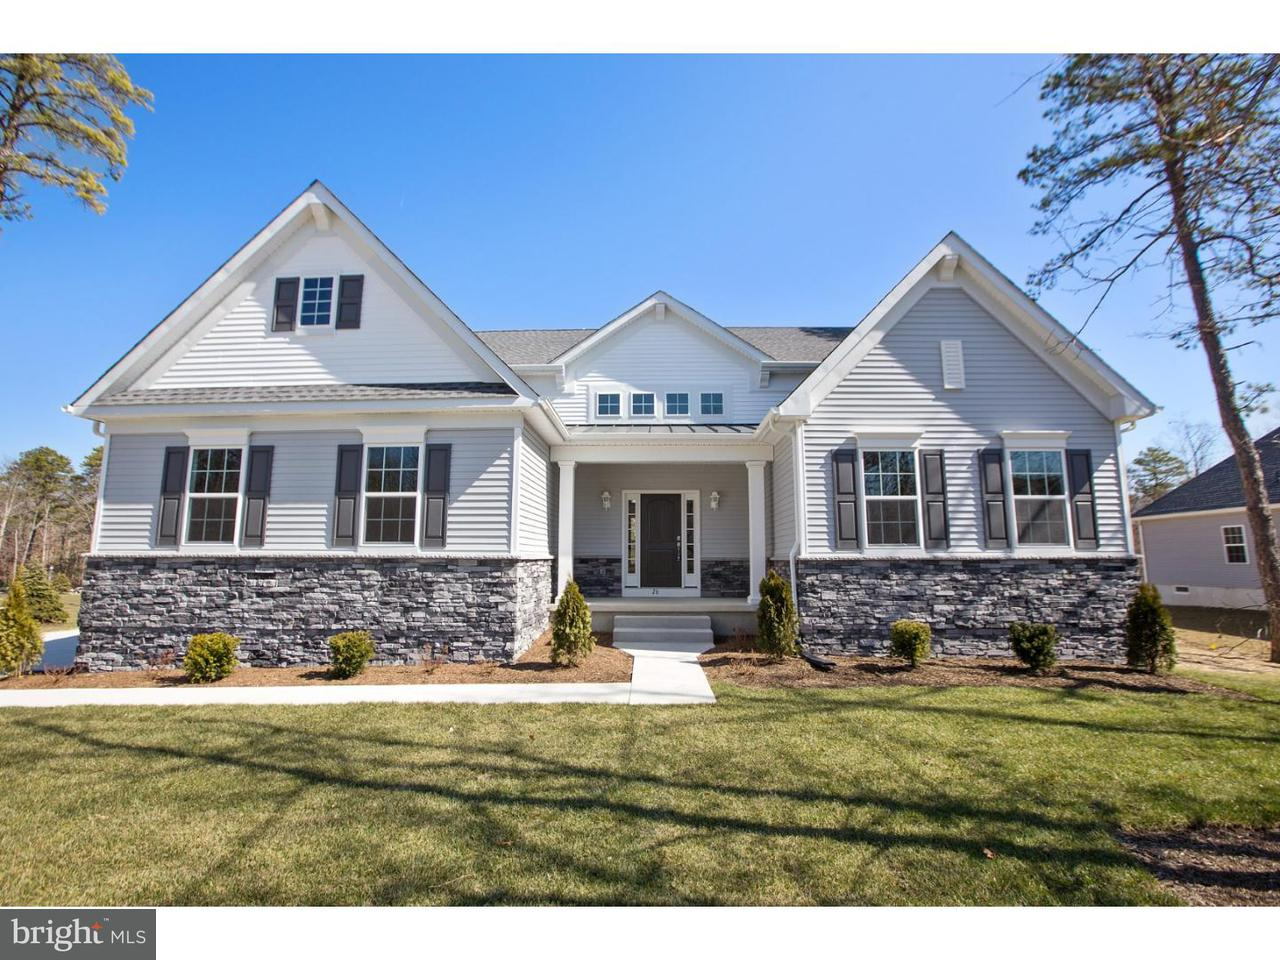 Single Family Home for Sale at 14 HIGHLAND Trail Medford Township, New Jersey 08055 United States